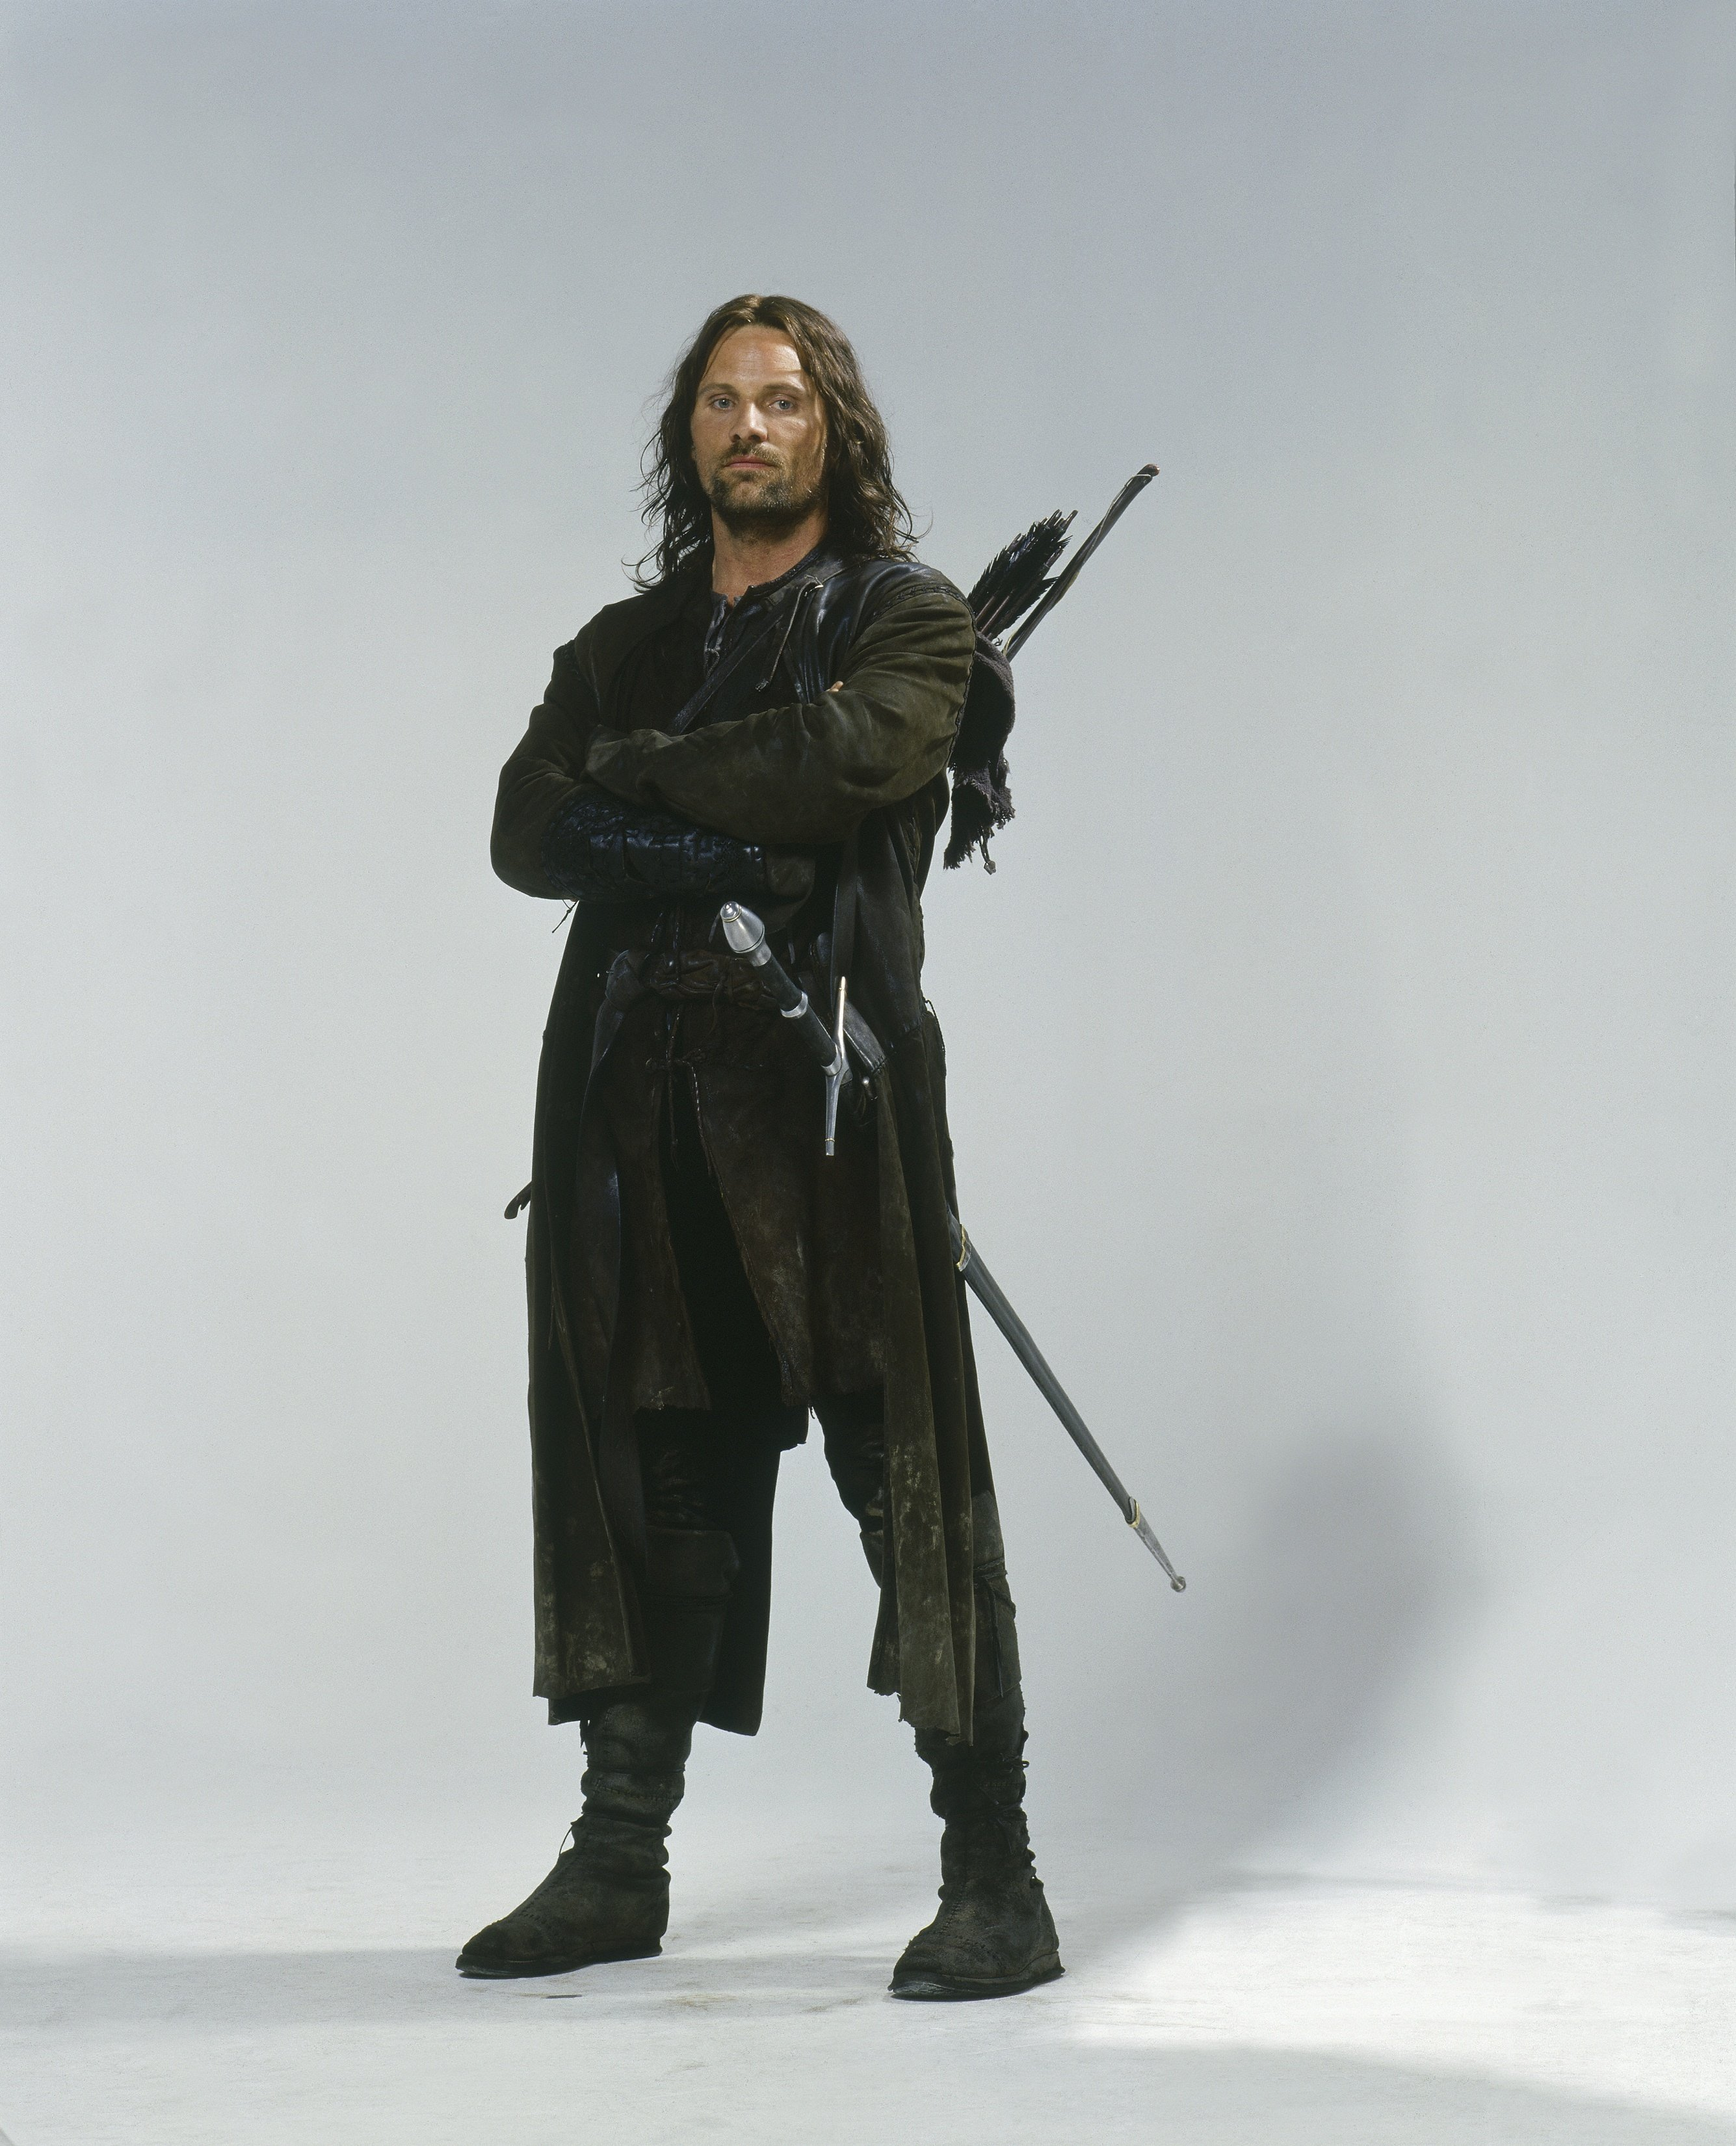 Lord Of The Rings Character Promo